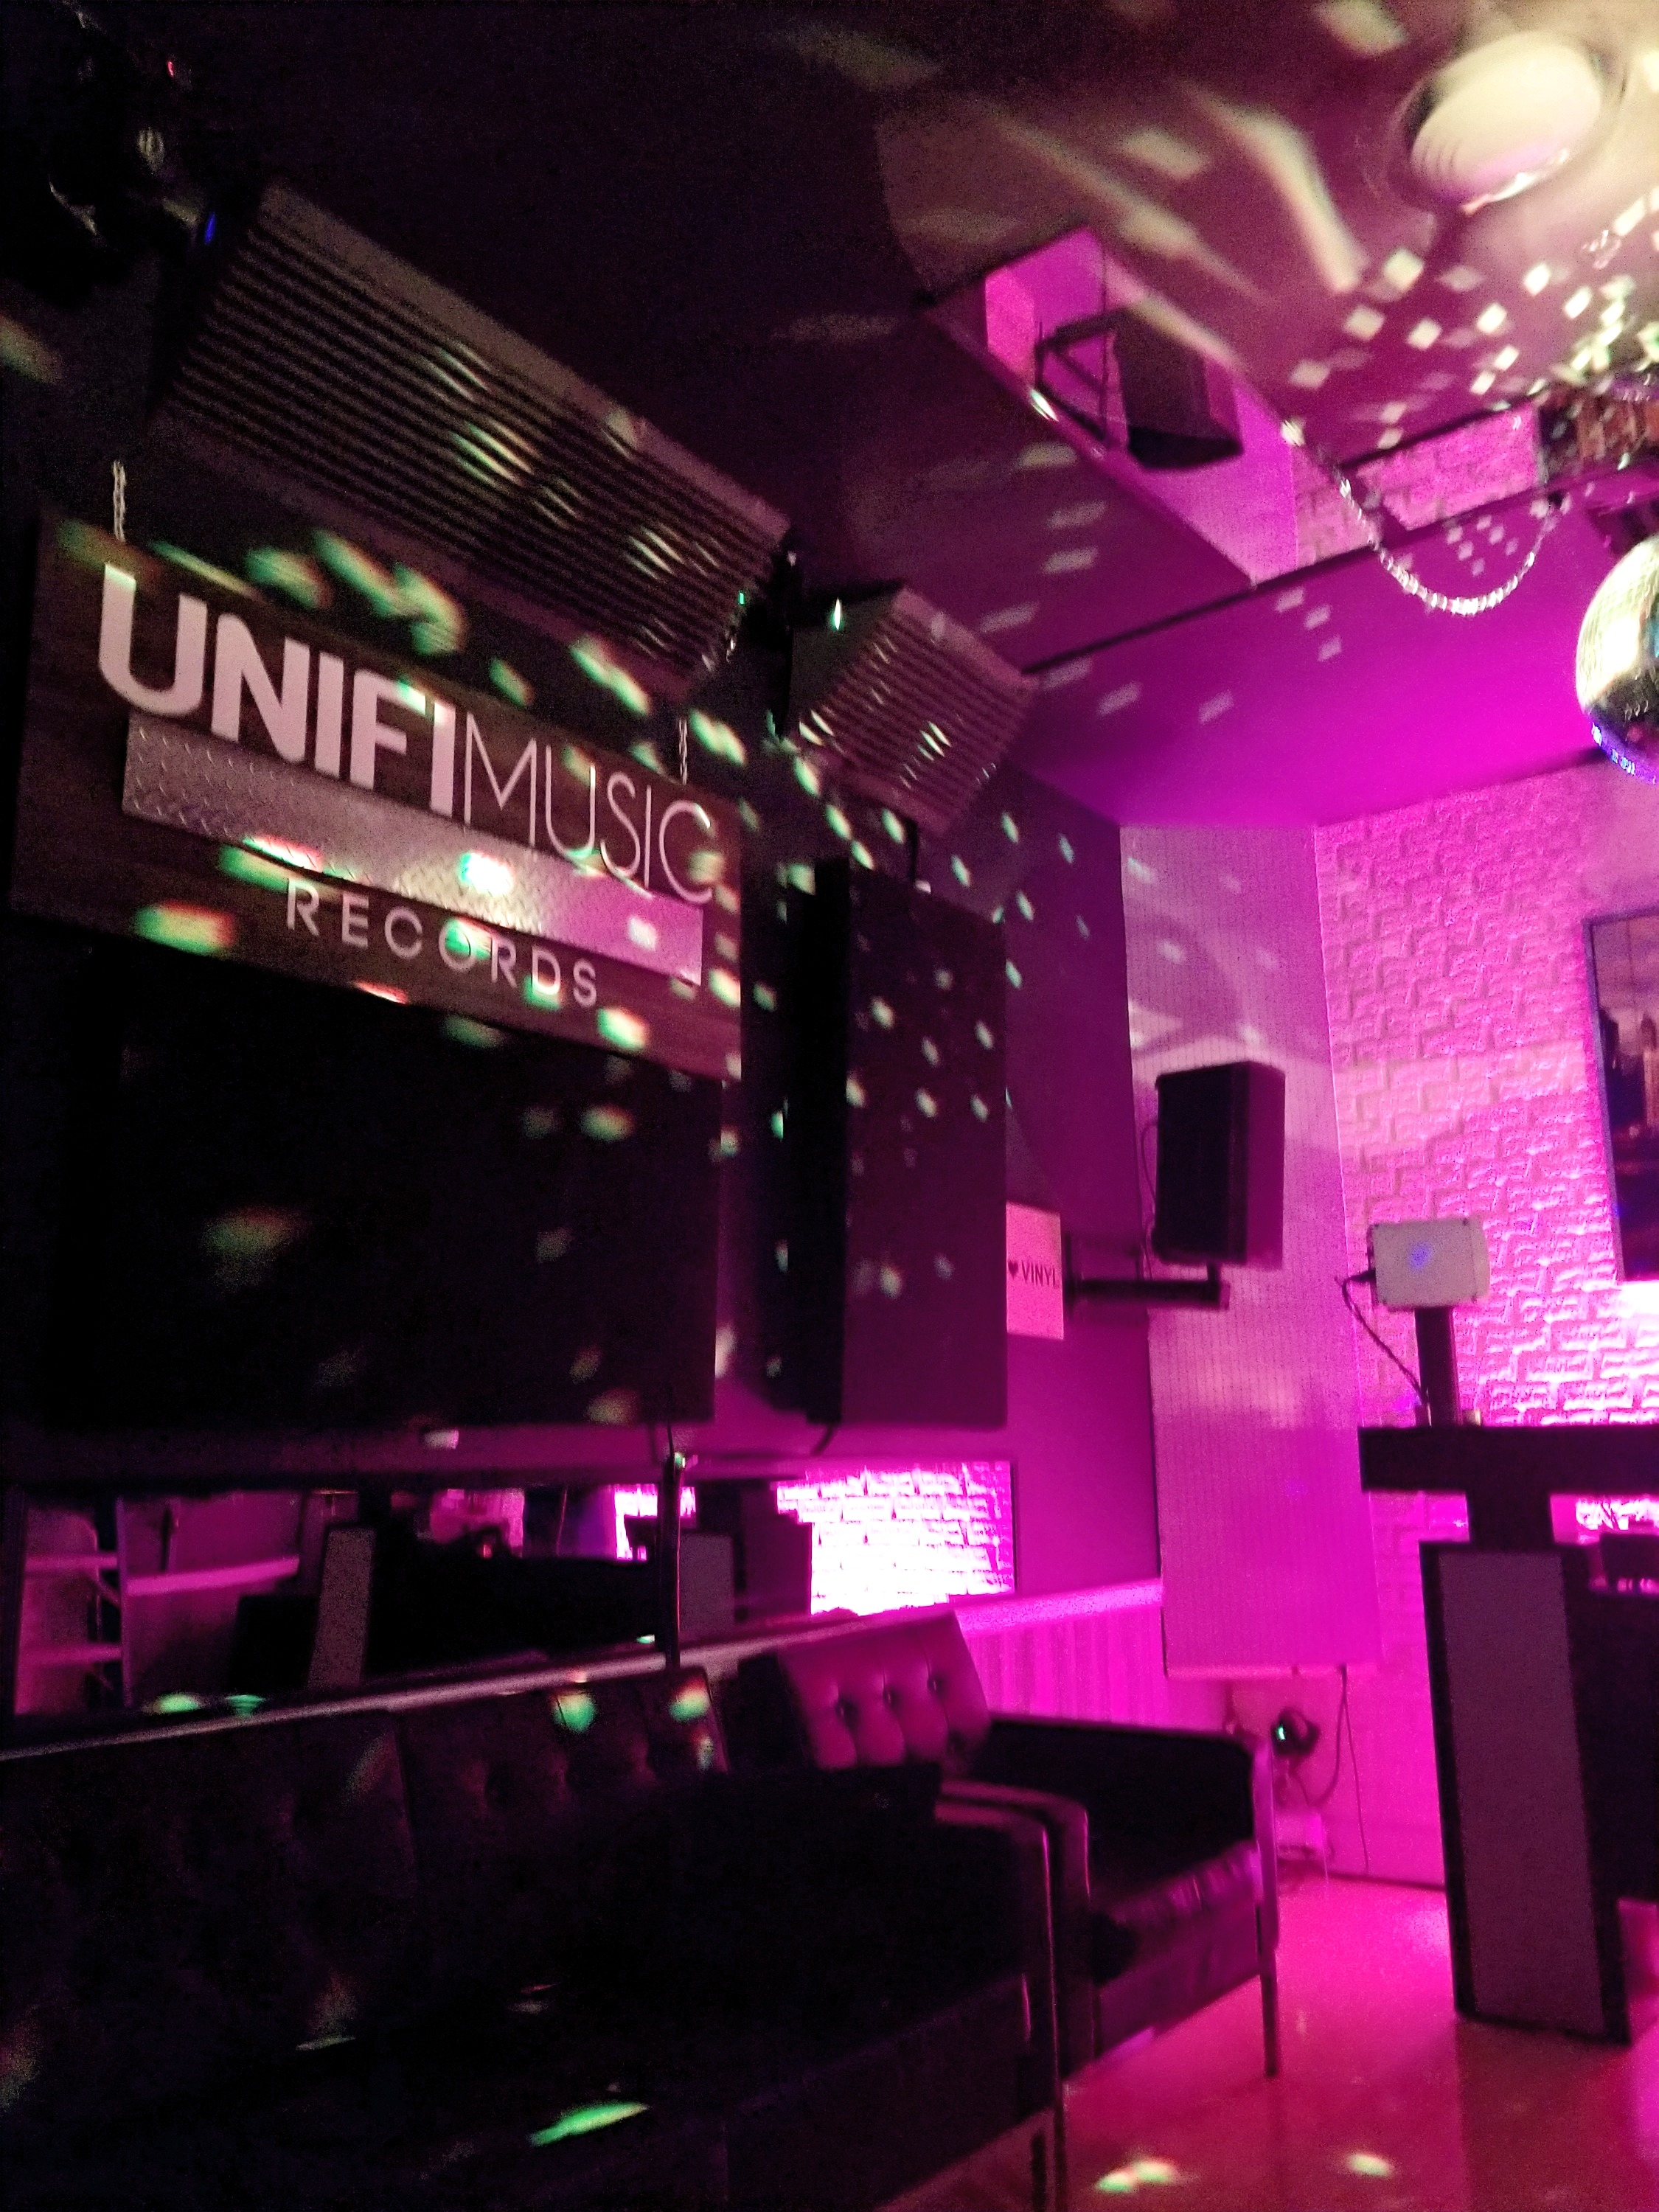 UNIFIMUSIC RECORDS